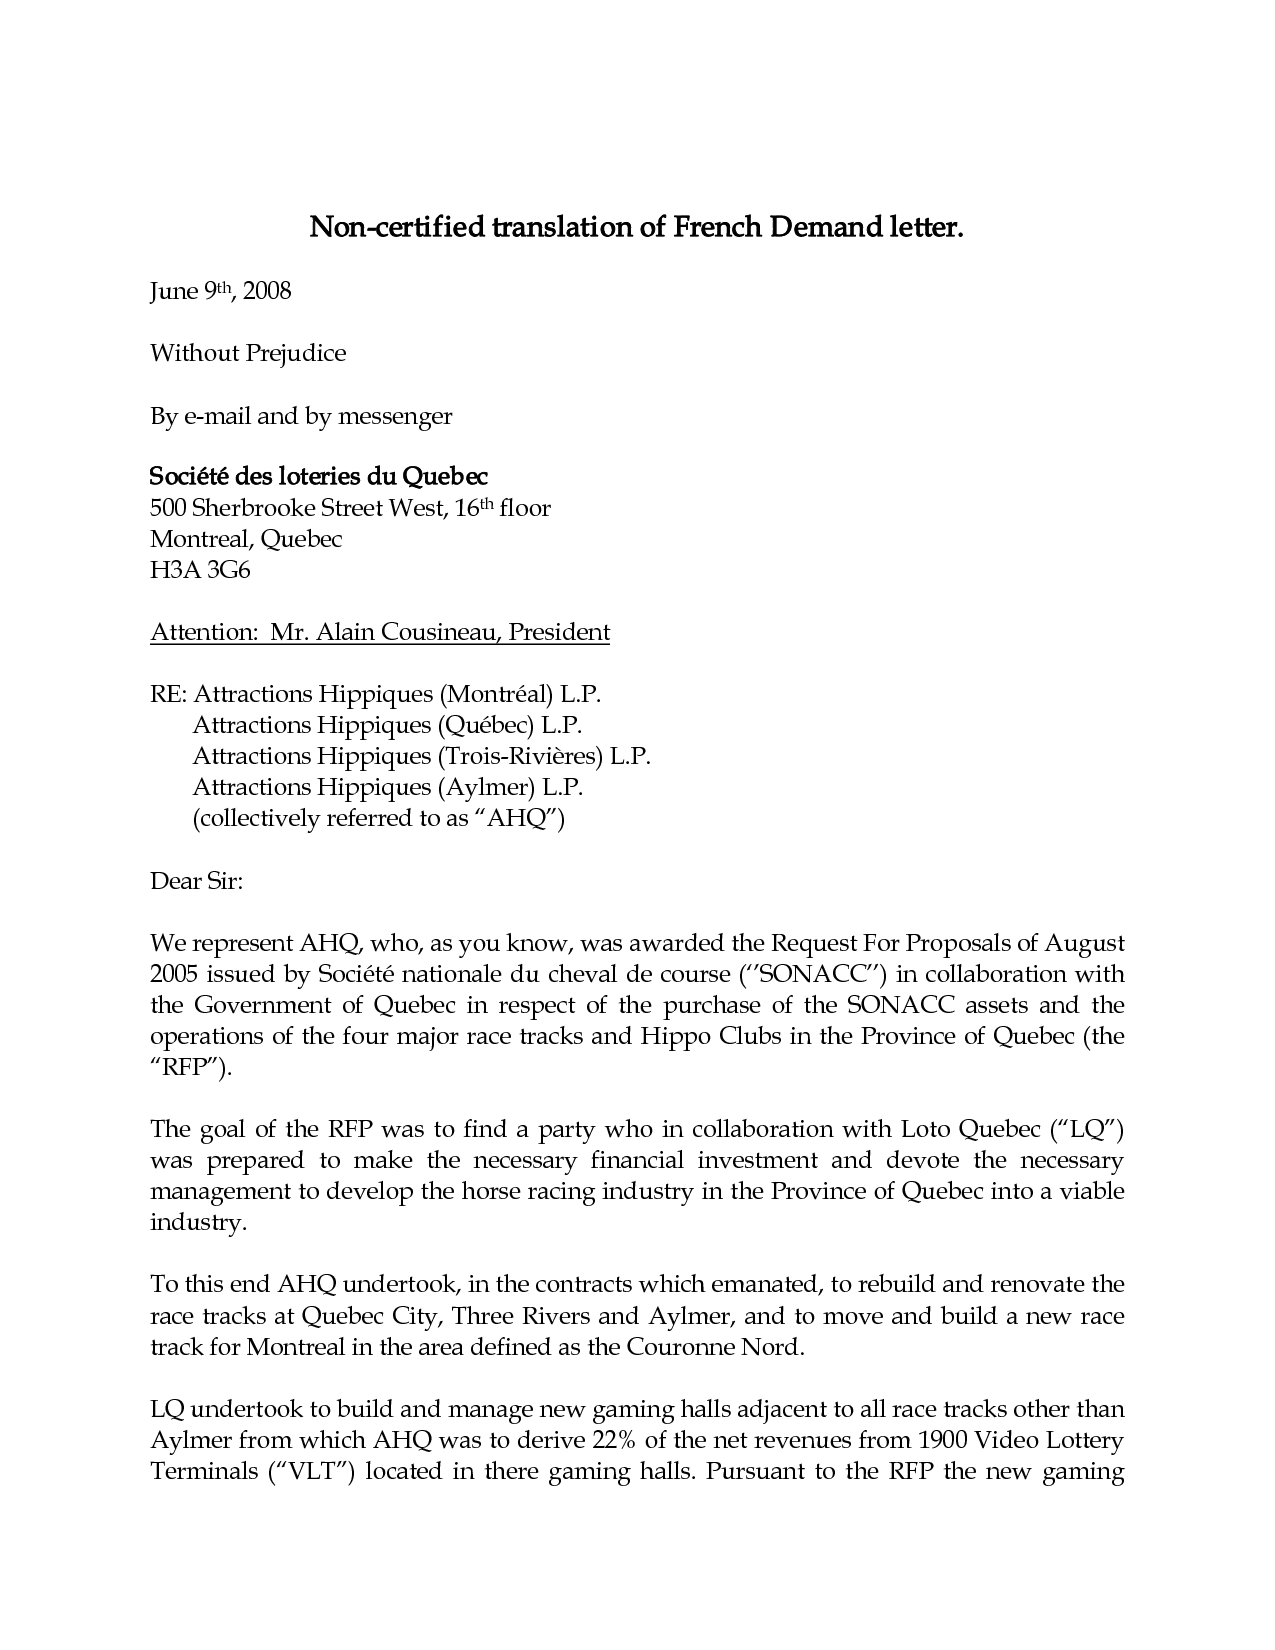 Letter Sample Authorization Format Claim Declaration Hotel Dental